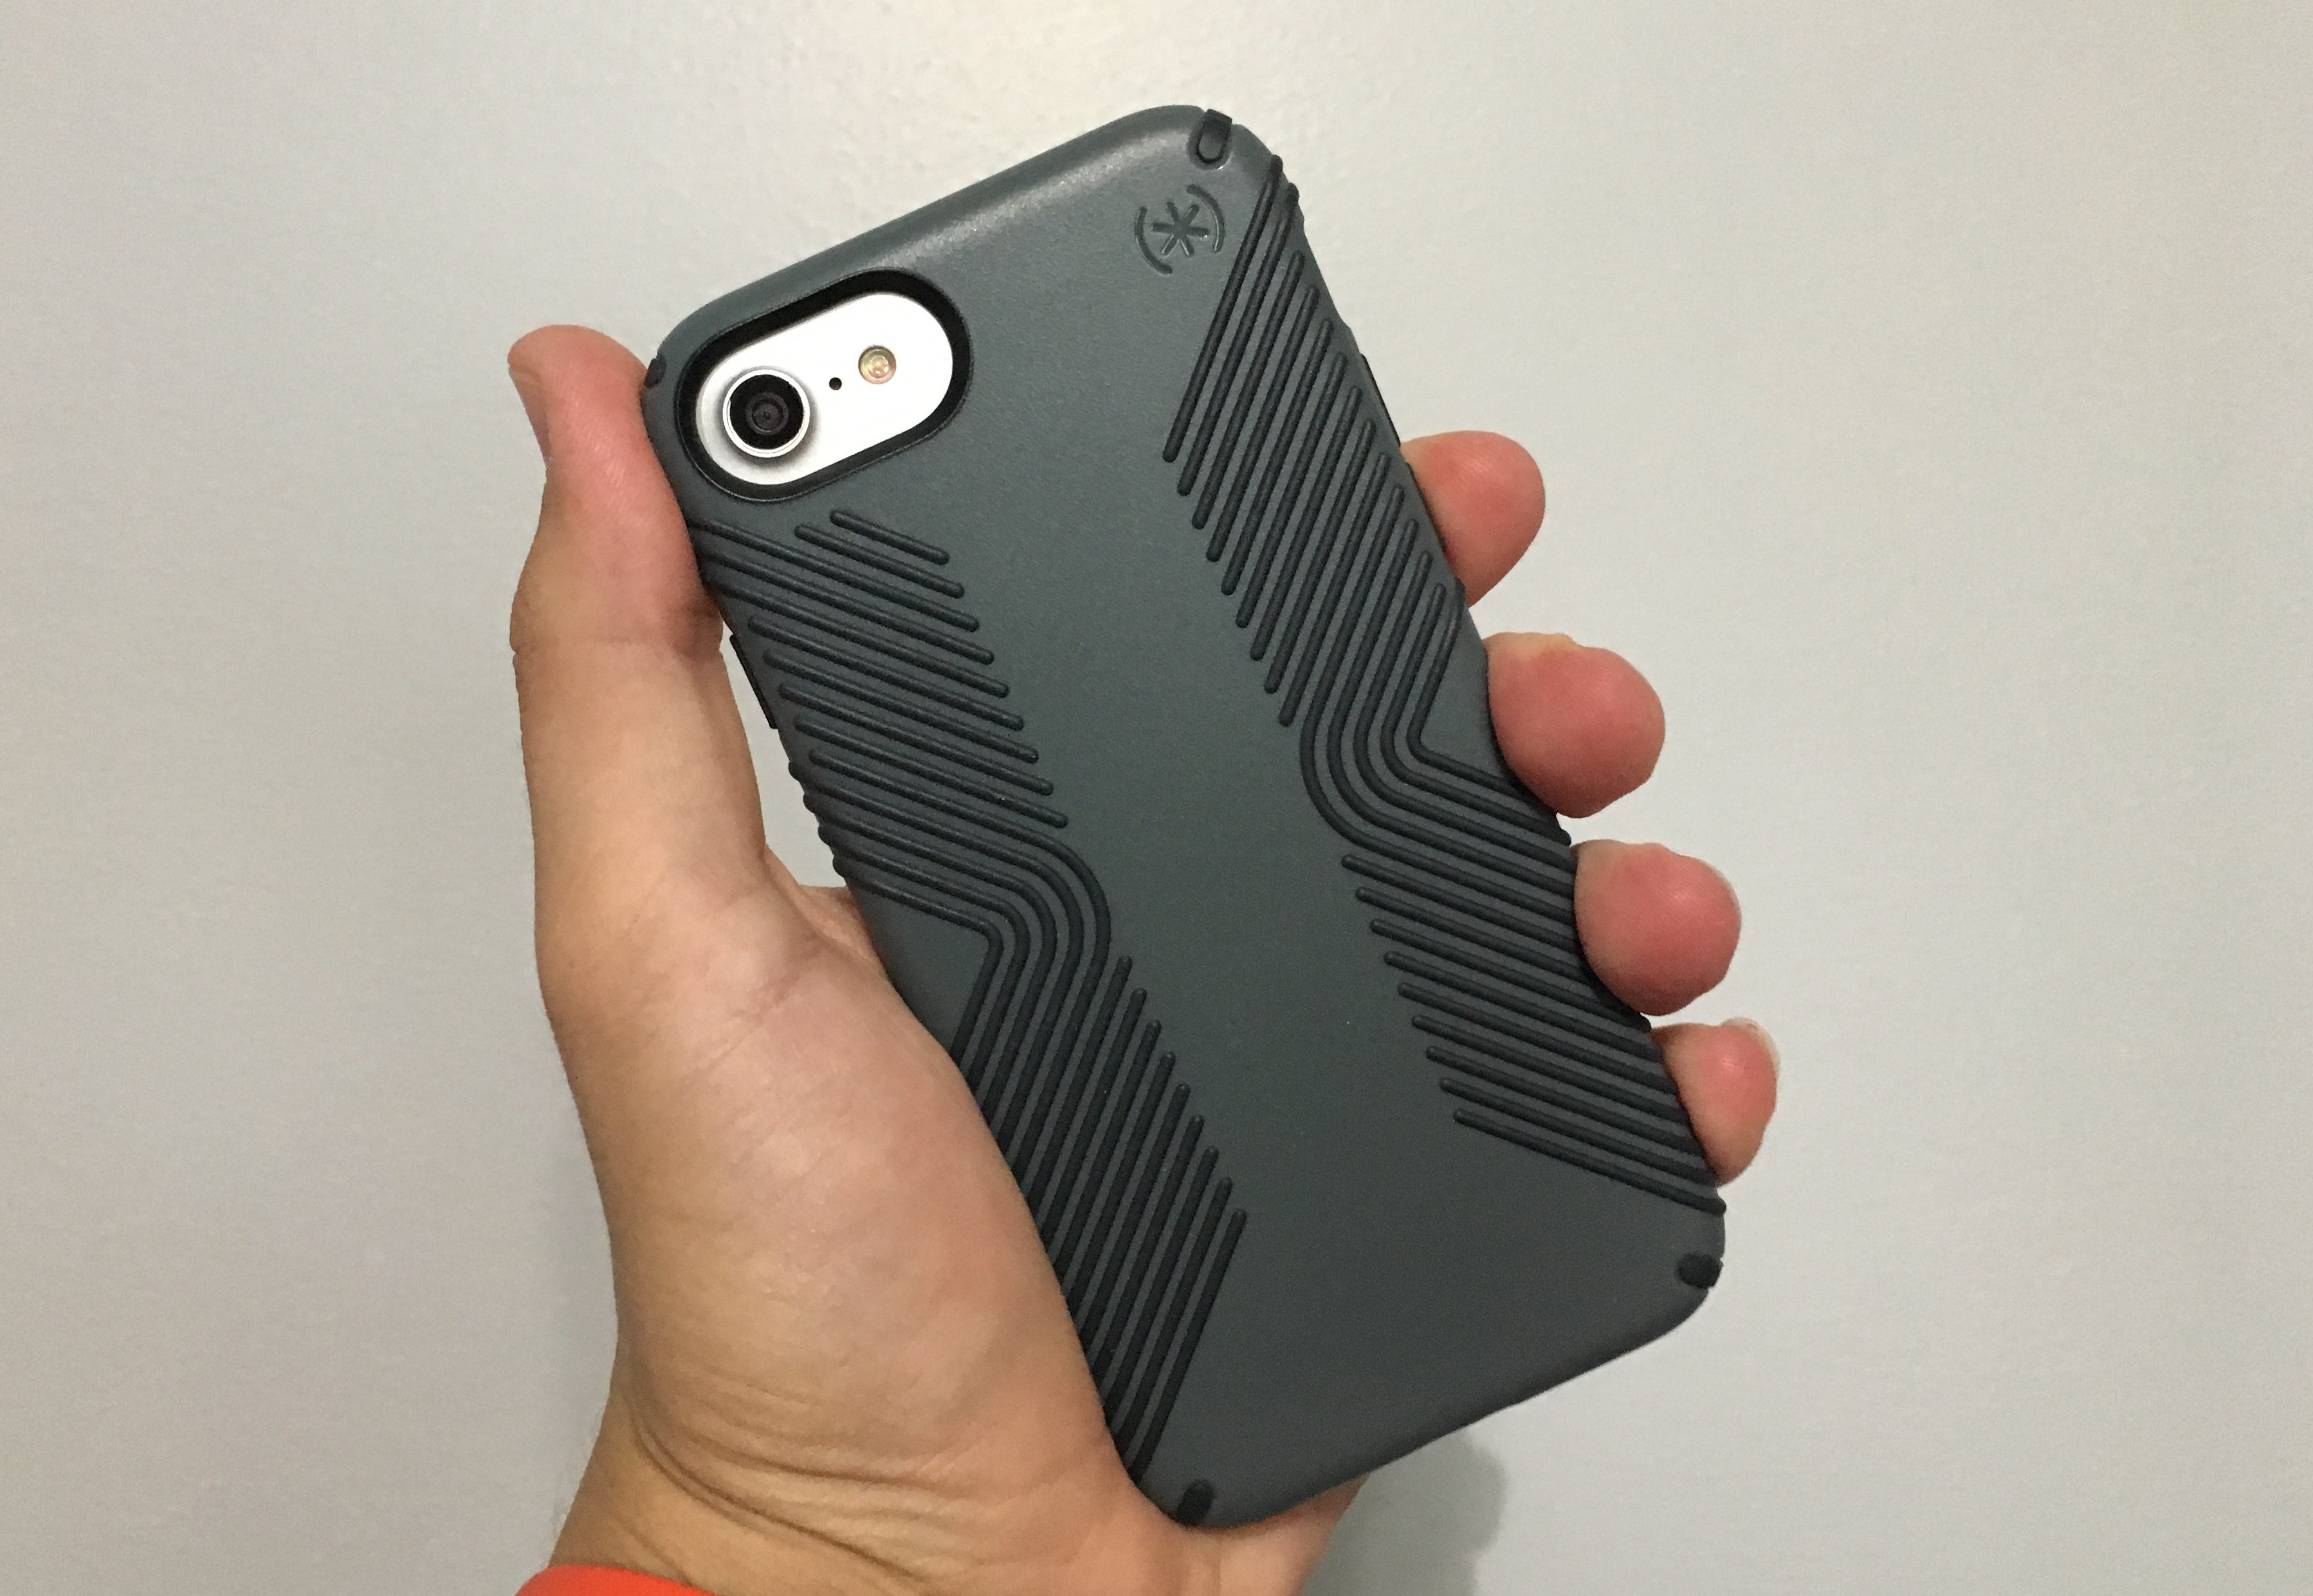 31 best iphone 7 cases \u0026 coversspeck chose to deliver a new line of iphone 7 cases that look and feel amazing the new presidio iphone 7 cases use upgraded material to deliver better